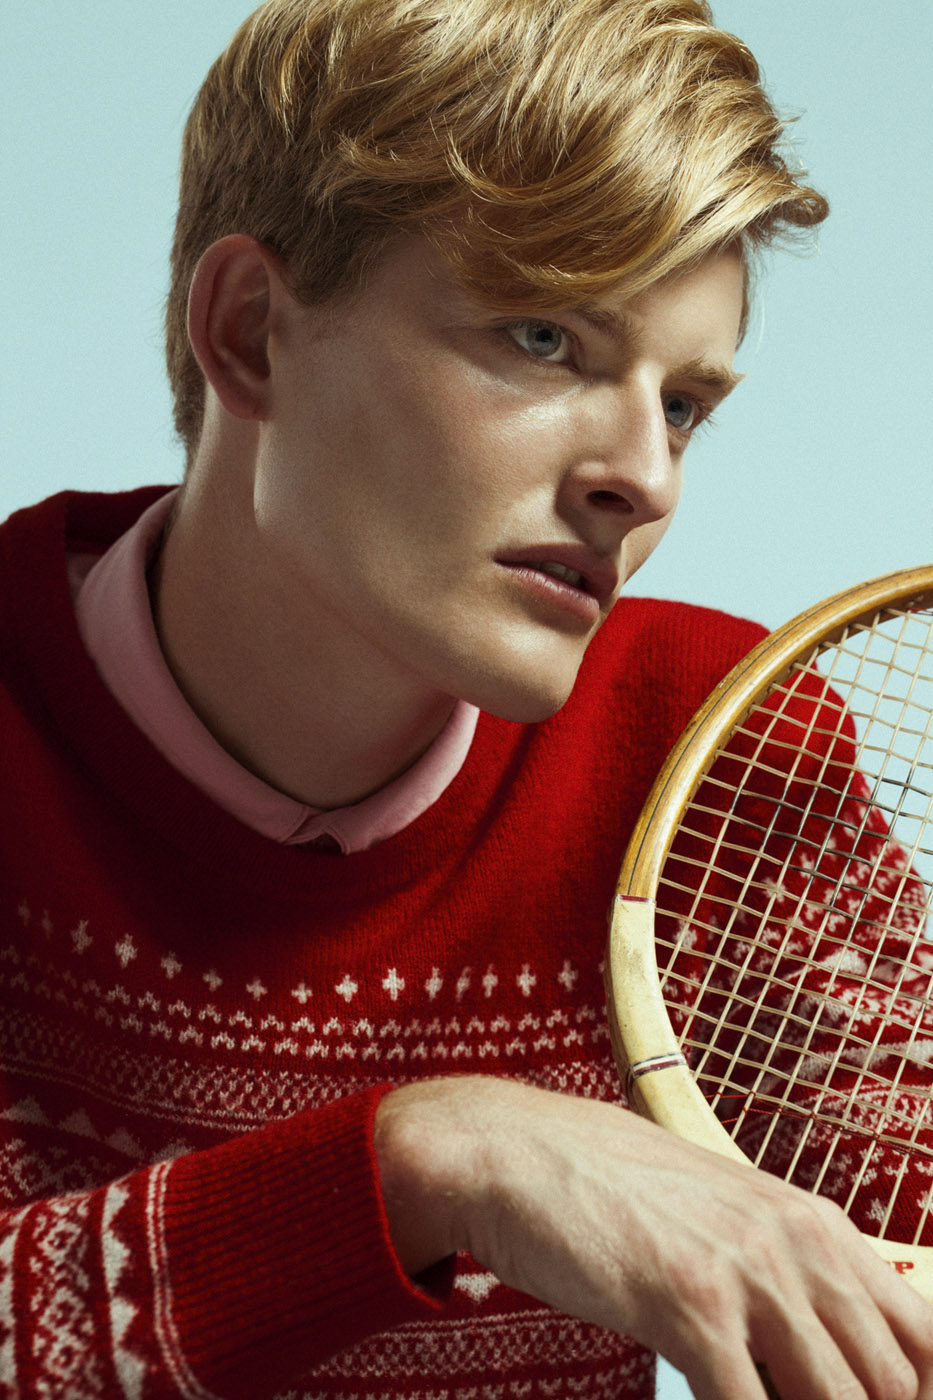 QUALIFIERS by Sven Kristian for CHASSEUR MAGAZINE